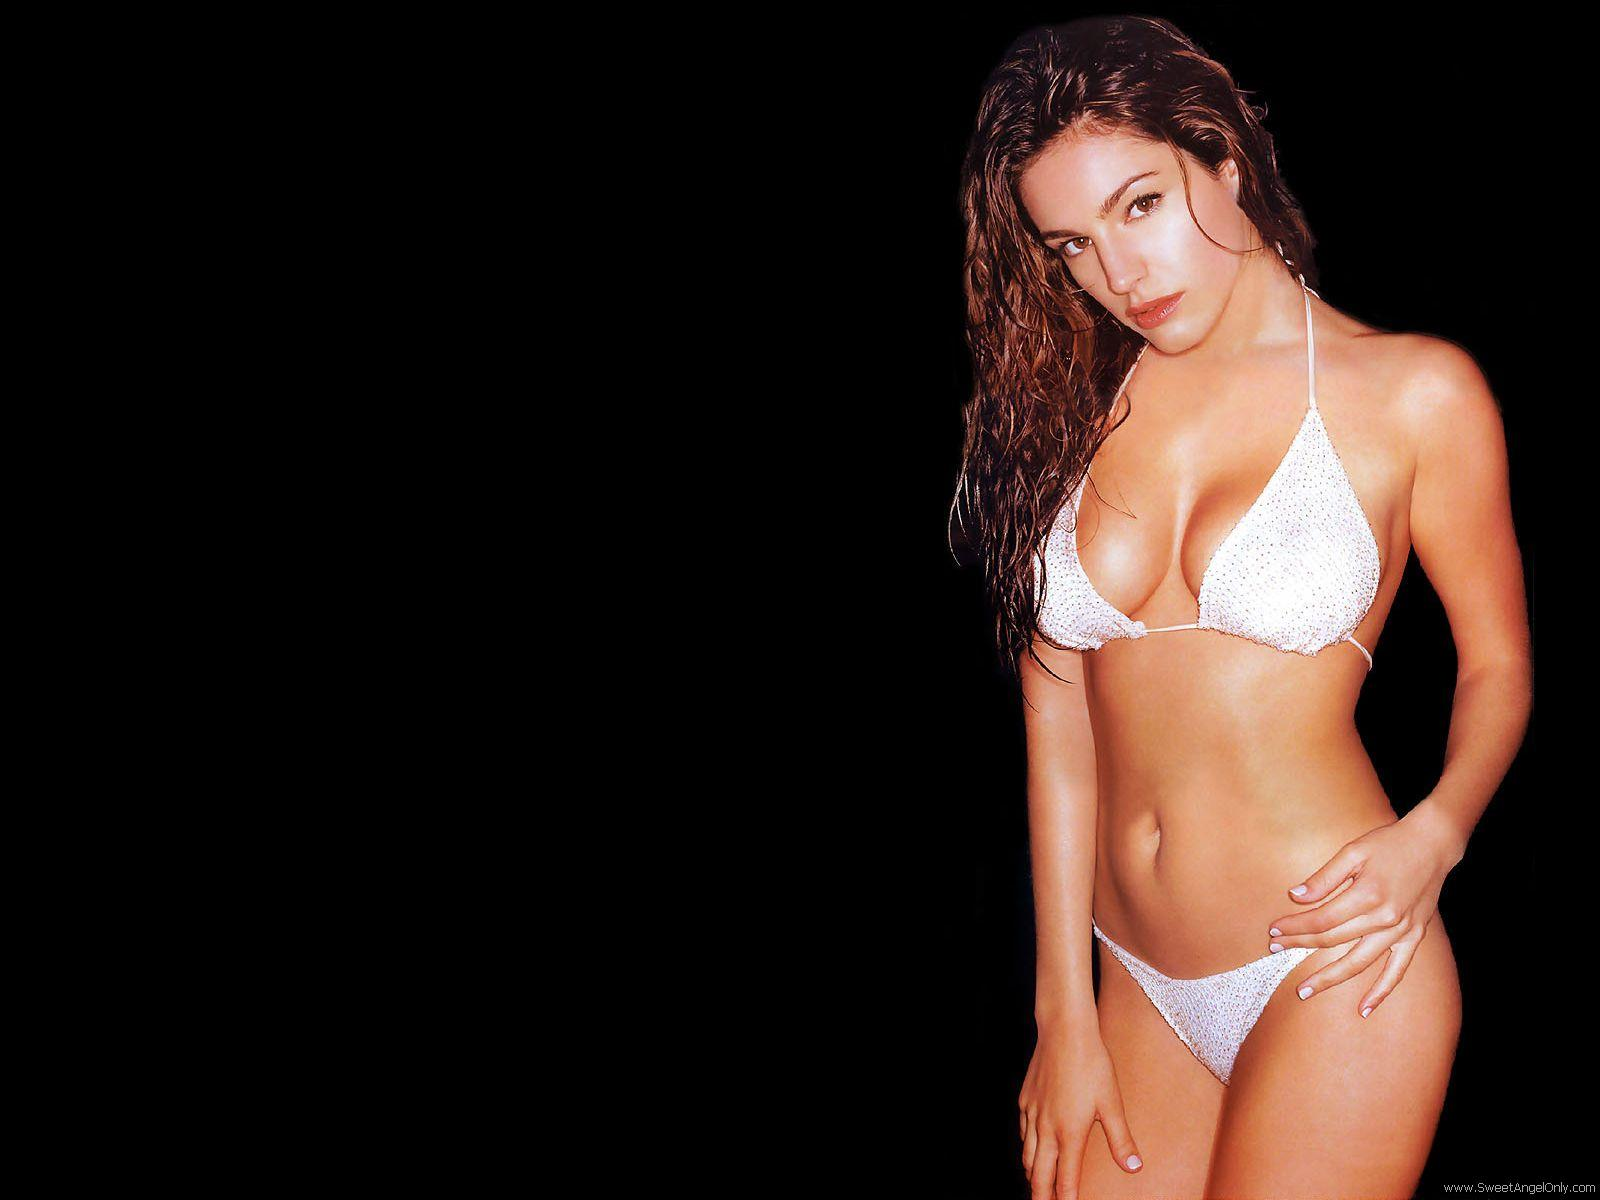 http://1.bp.blogspot.com/-Fg1t5iSyVHw/Td6x1p86alI/AAAAAAAAFWc/gXml7eW213M/s1600/kelly_brook_a_HD_Wallpaper_in_a_05.jpg